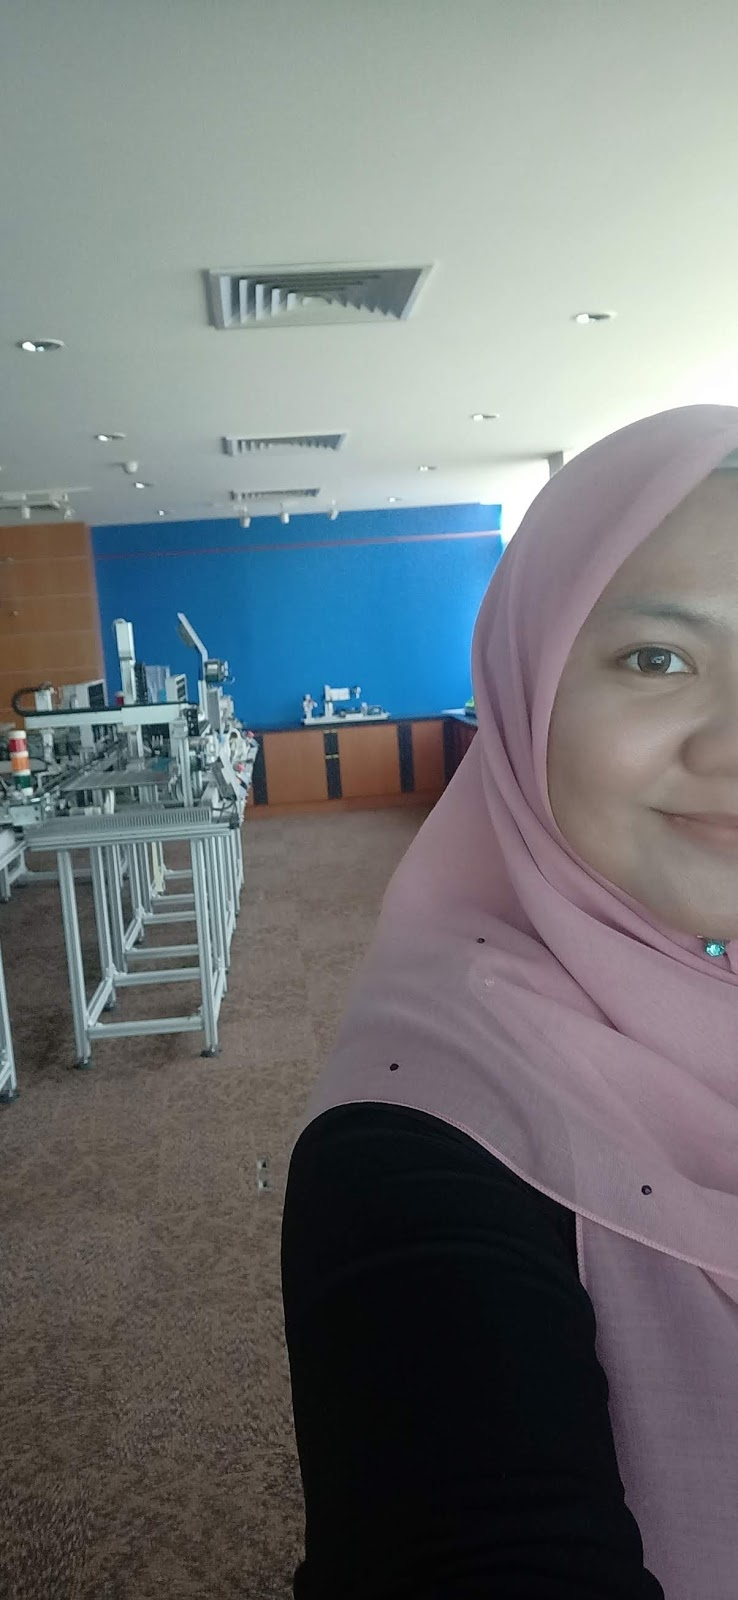 Pneumatic Training di SMC Pneumatic (M) Shah Alam